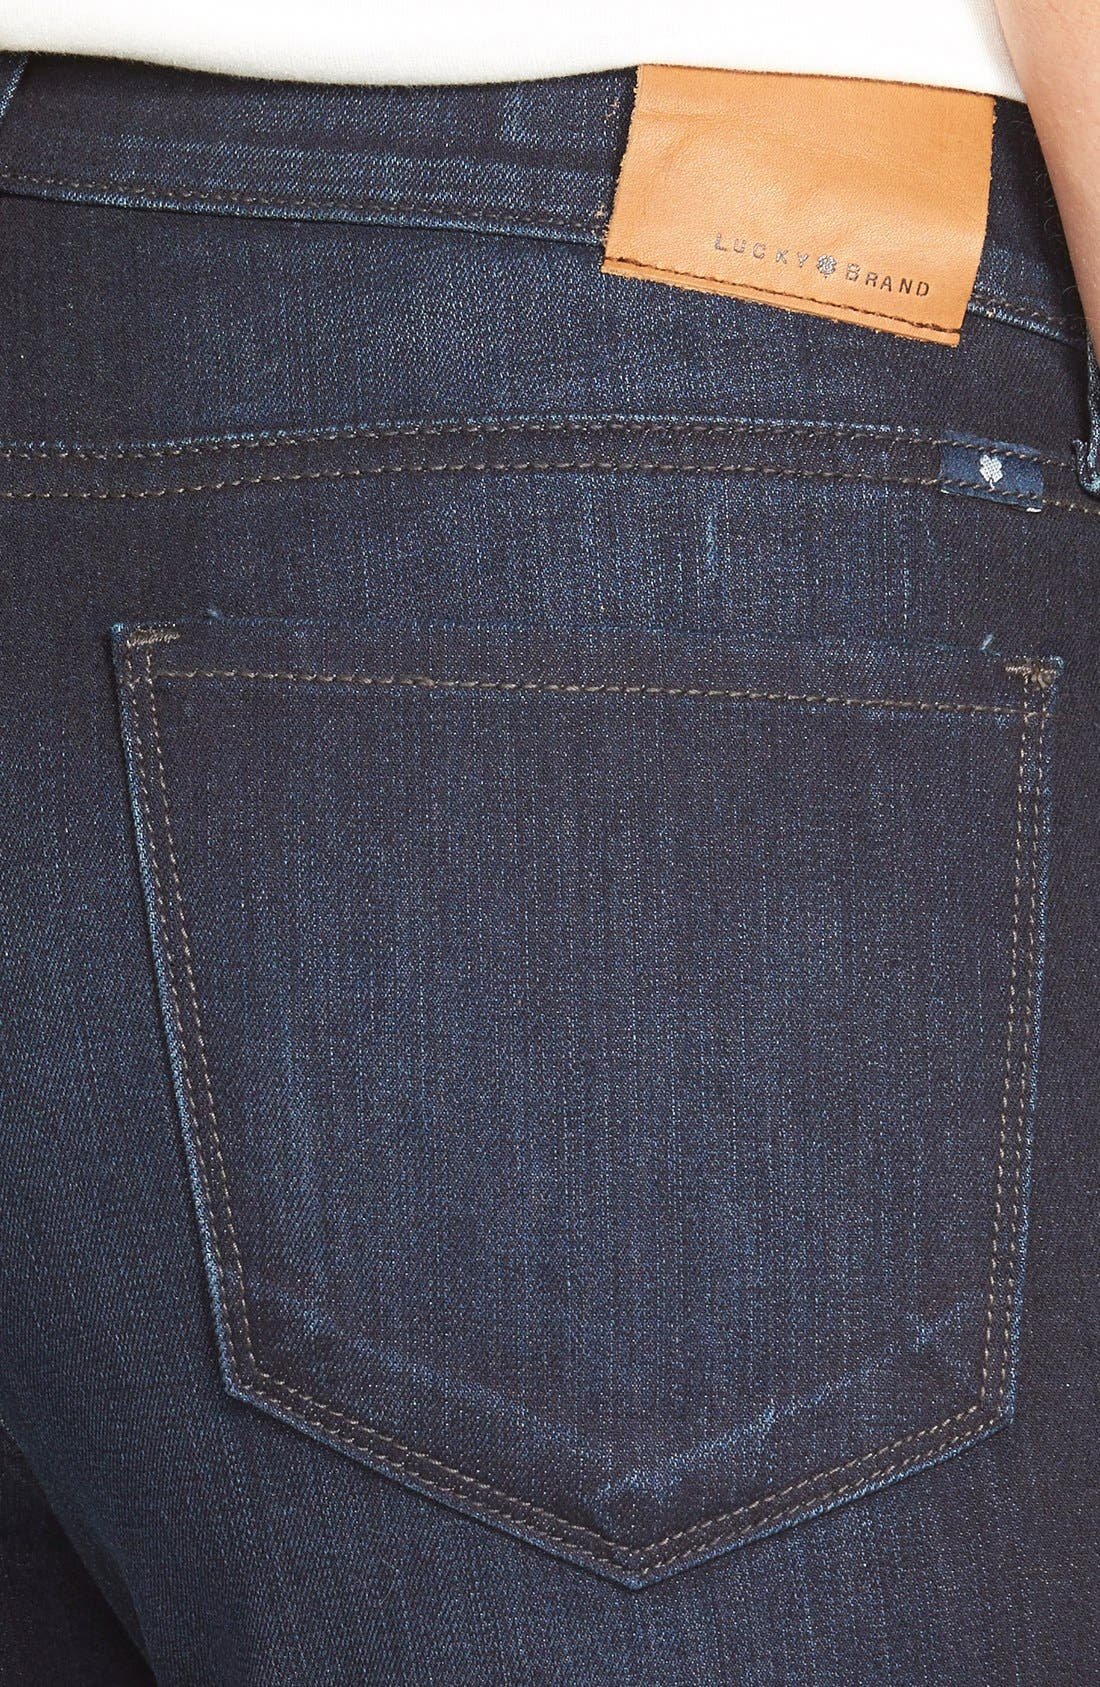 'Brooke' Stretch Bootcut Jeans,                             Alternate thumbnail 3, color,                             410